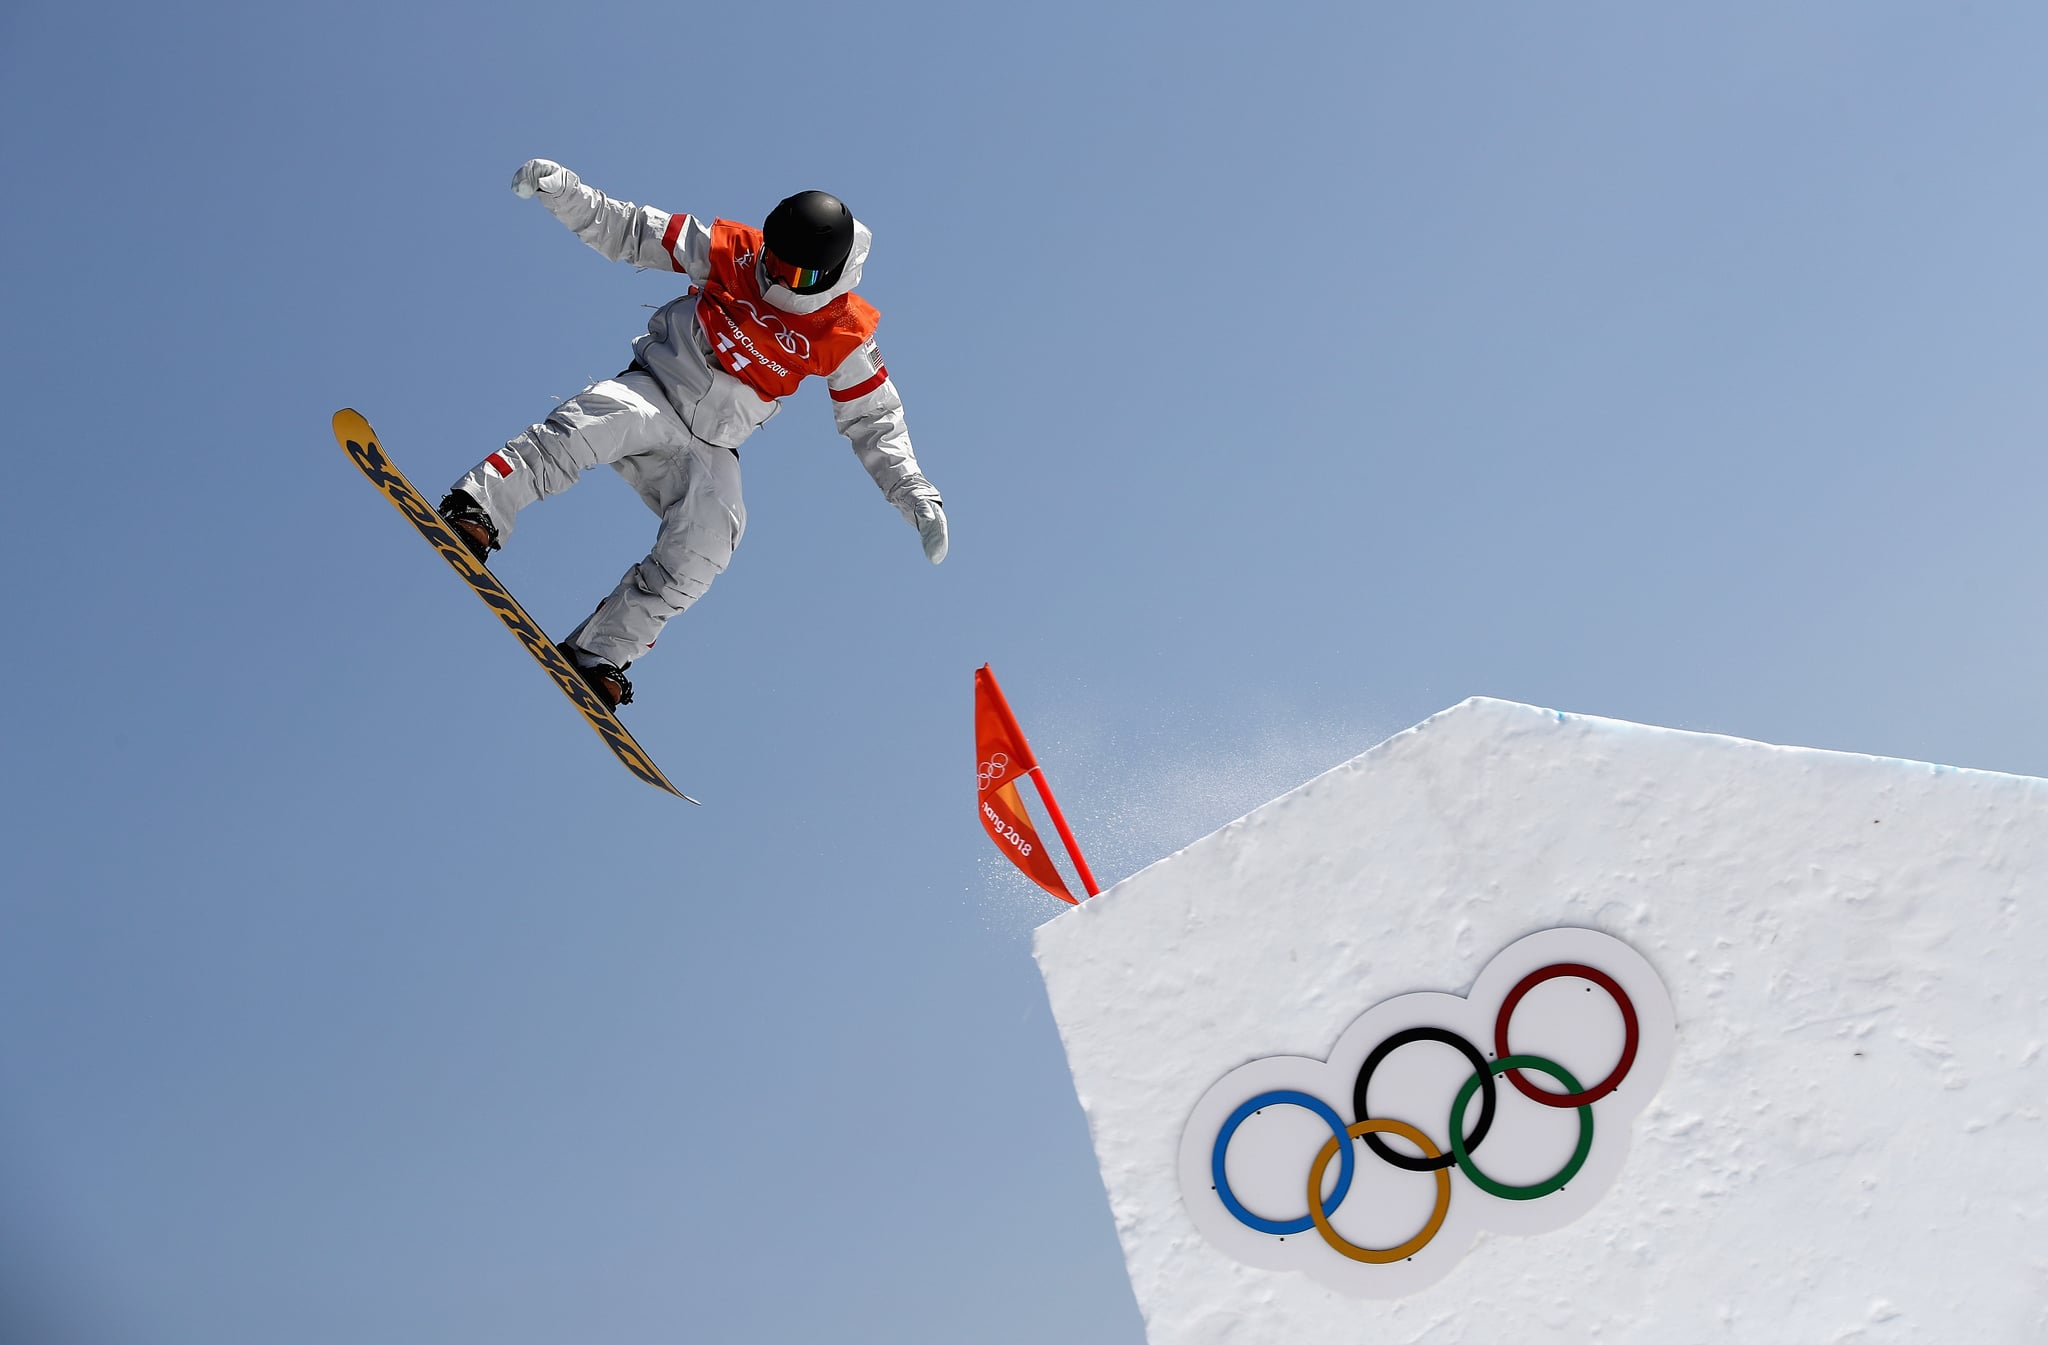 NewsAlert: Canada's Sebastien Toutant wins gold medal in Olympic big air